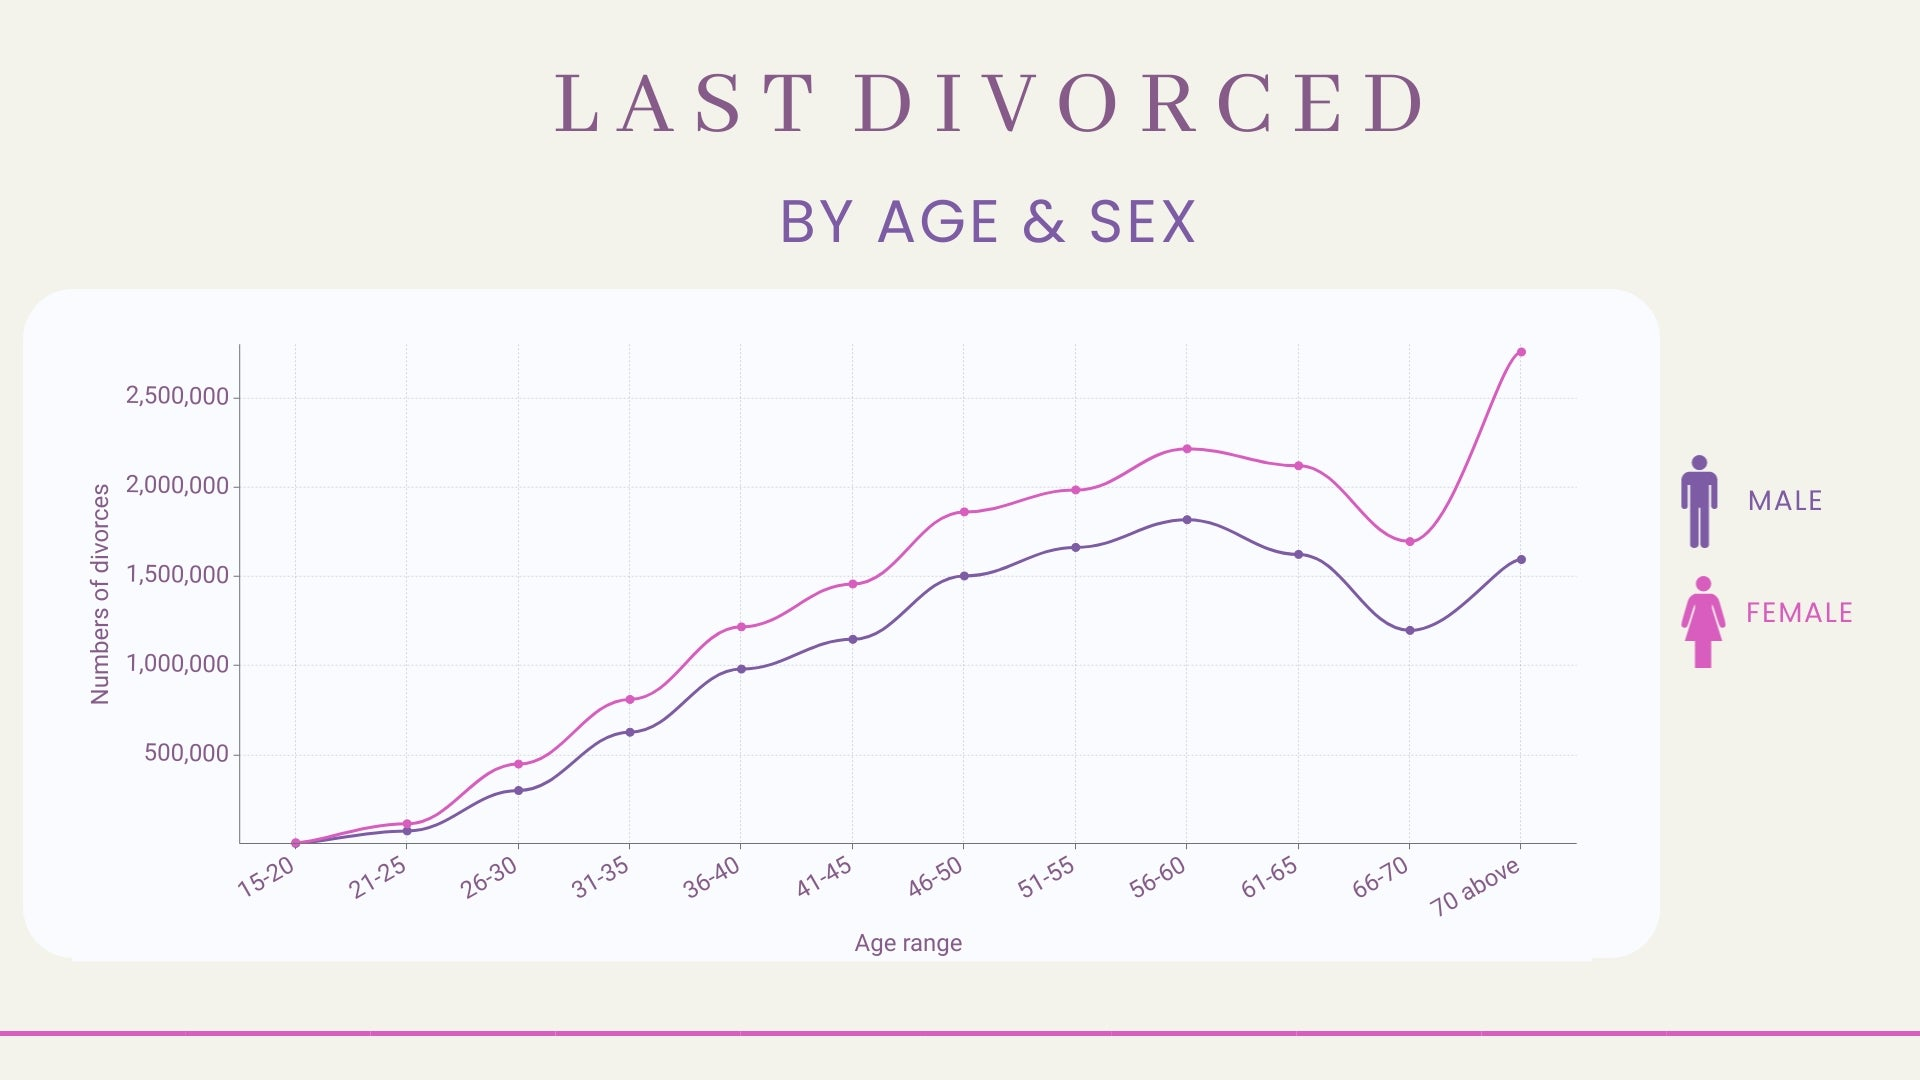 Age & Gender: Last Divorced in 2019 for the Whole Unites States